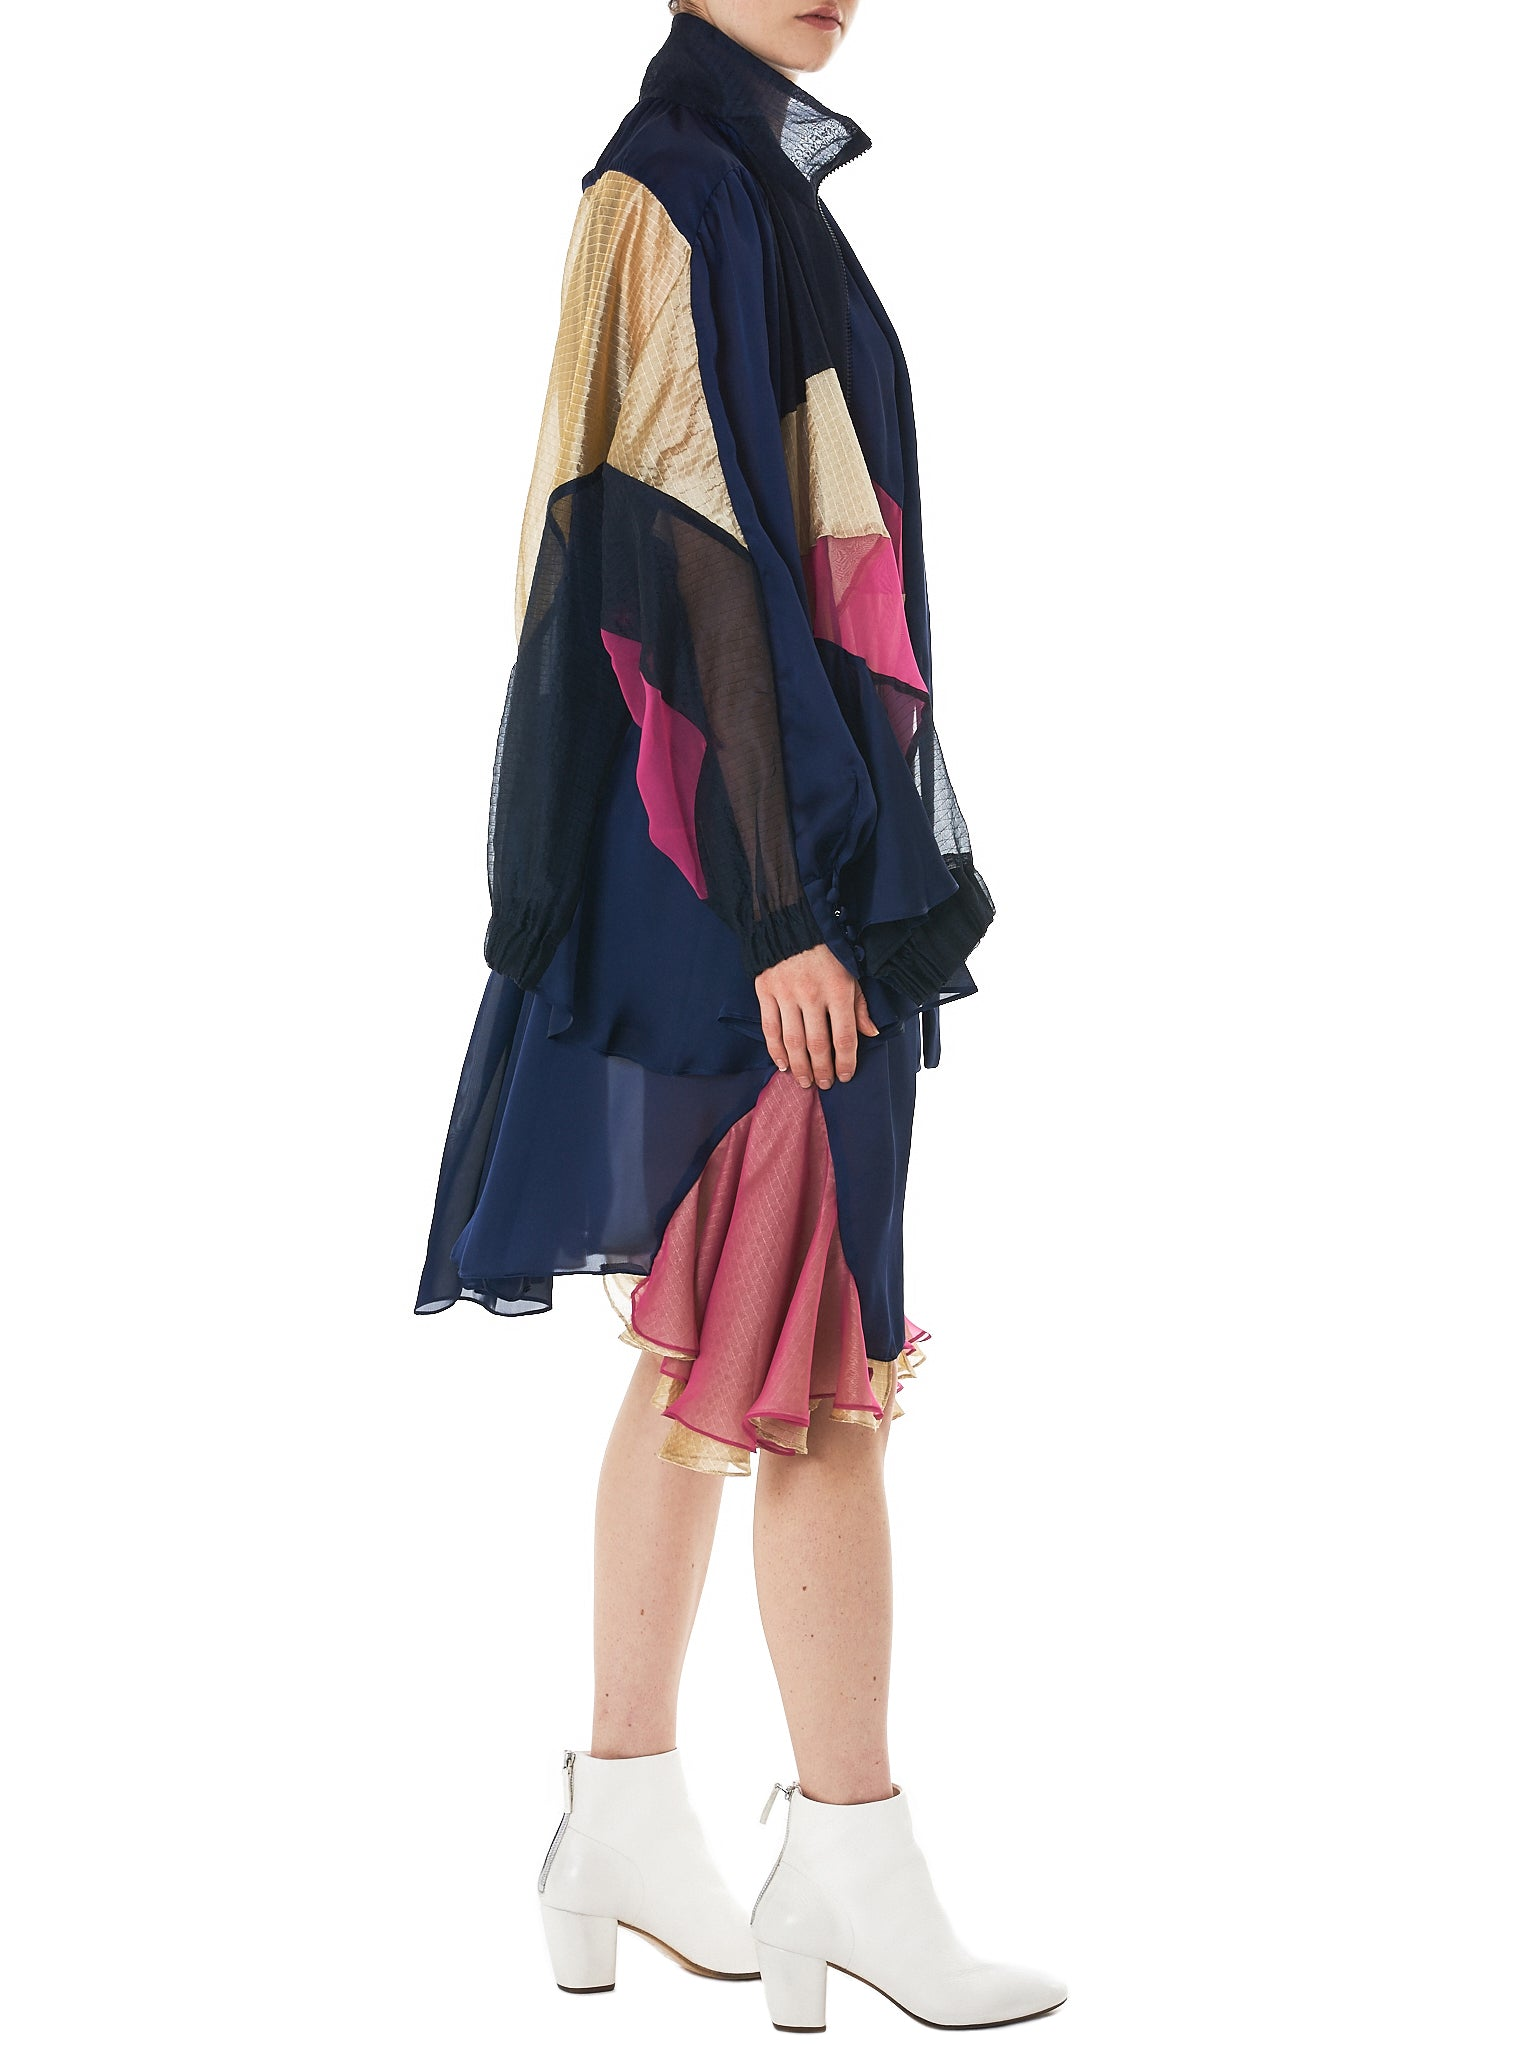 Jacketed Two-Piece Dress (18-03800-NAVY-BEIGE-PINK)